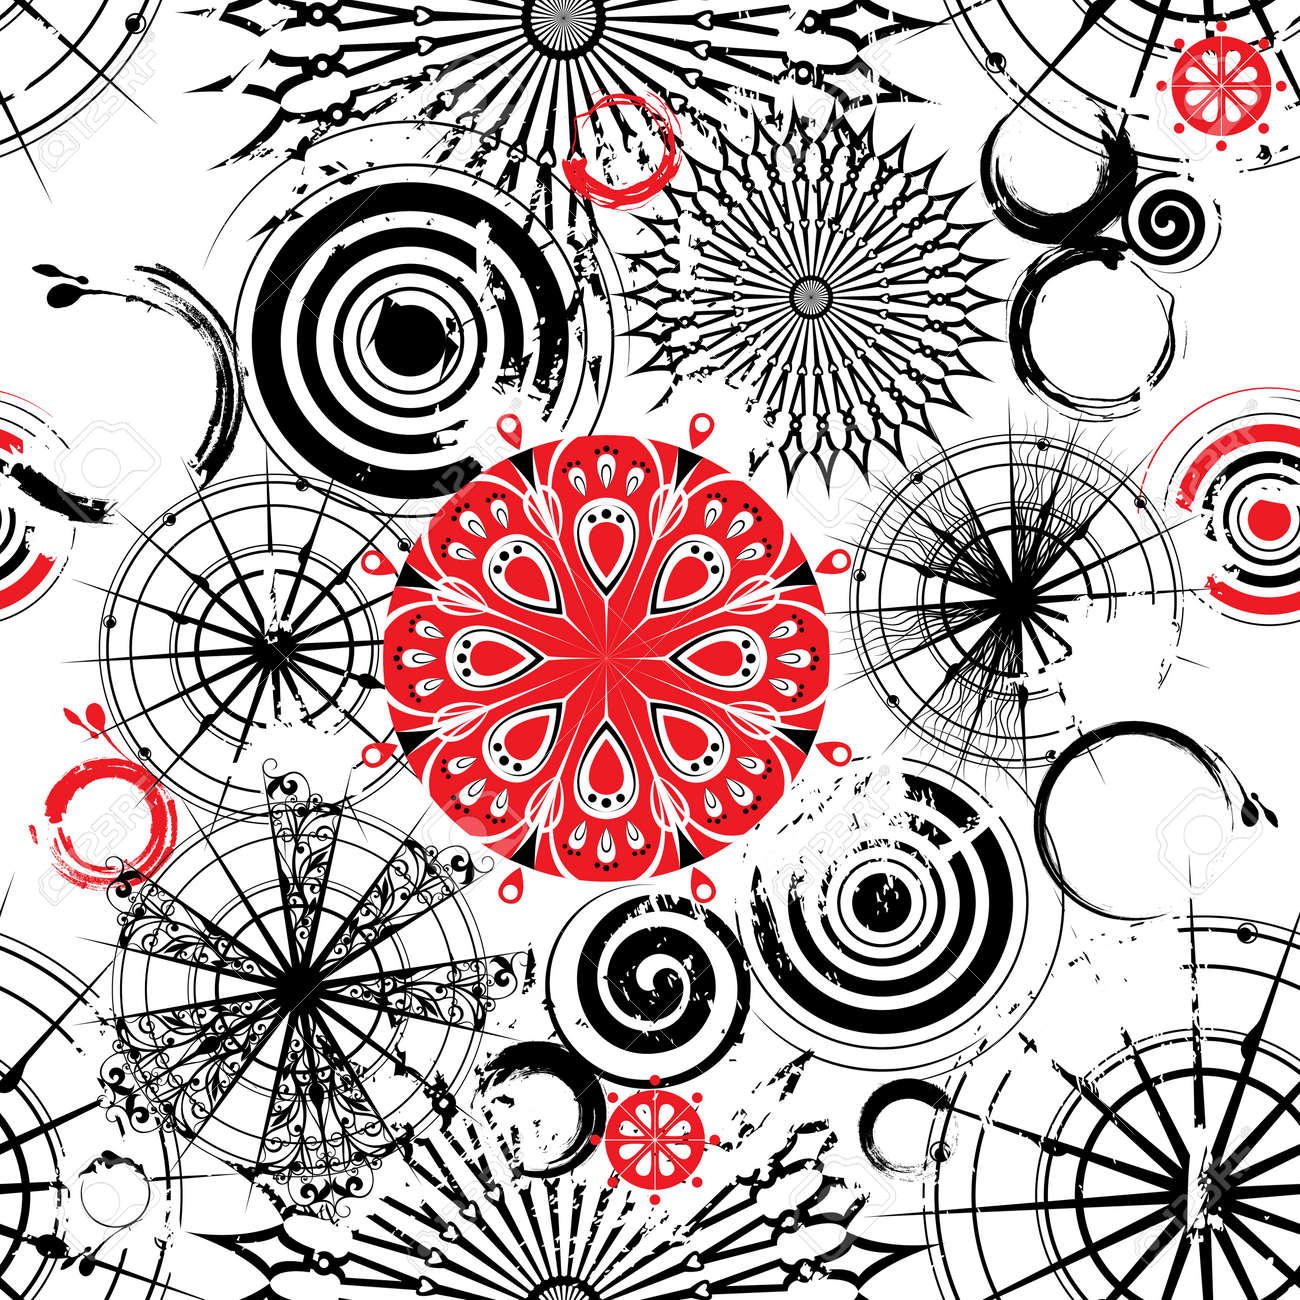 seamless grunge background with decorative openwork black, white and red circles - 8806199